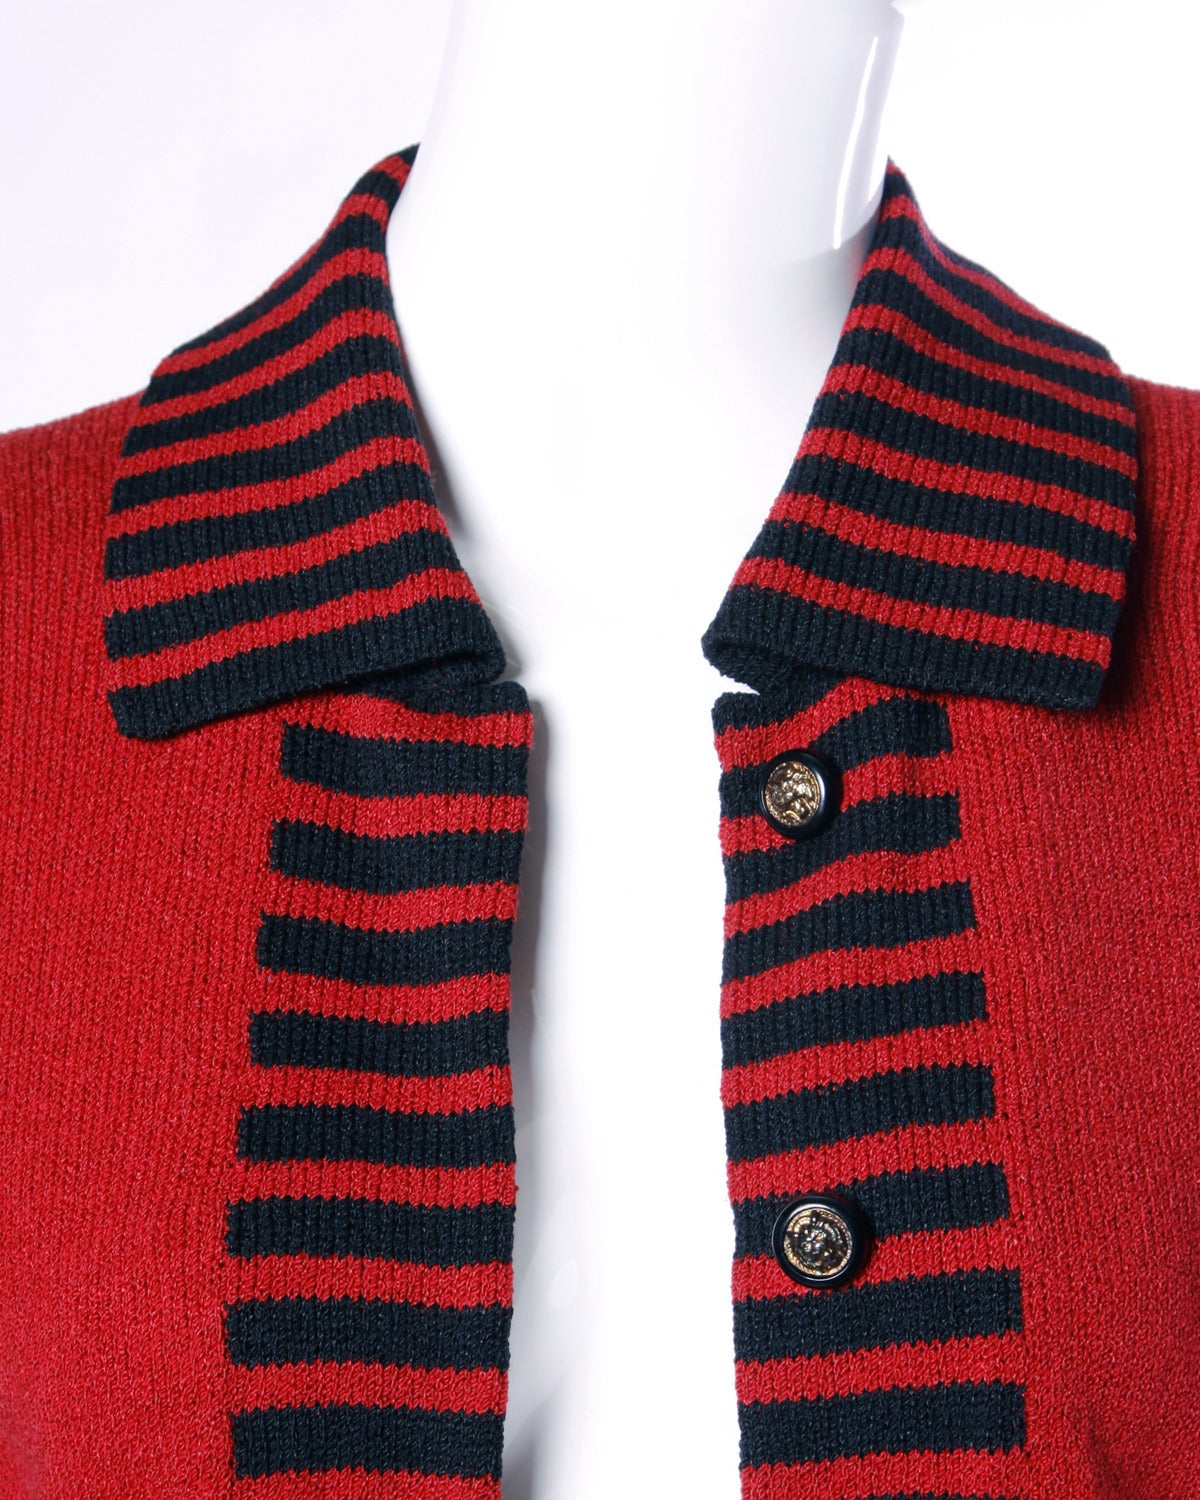 Adolfo Vintage Red & Black Striped Knit Cardigan Sweater or Suit Jacket In Excellent Condition For Sale In Sparks, NV